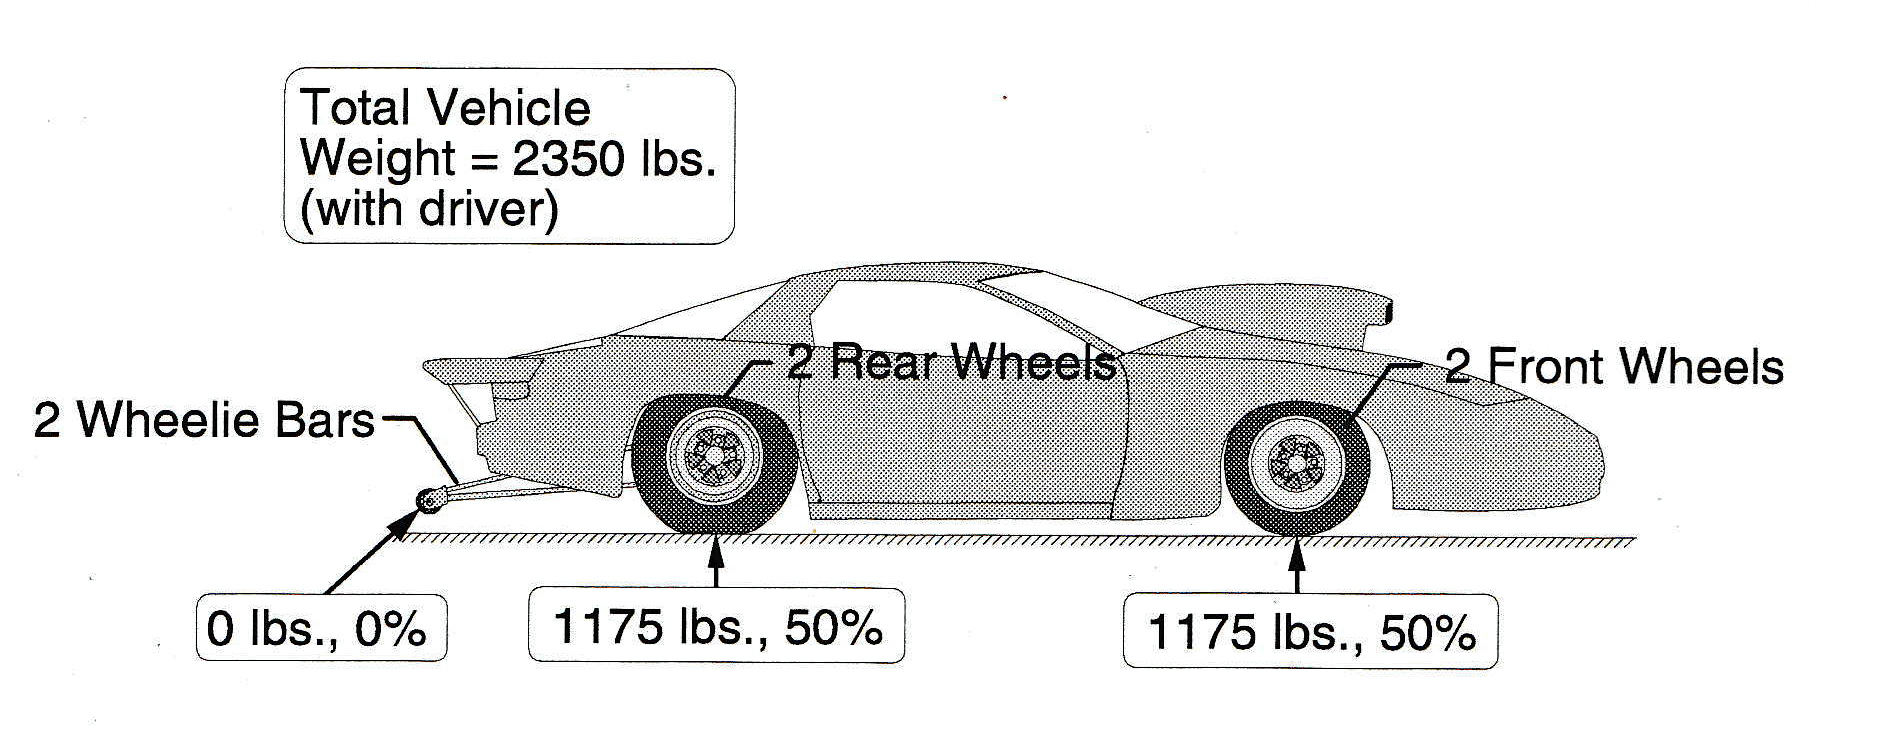 Weight training everything you need to know about race car weight in a perfect world once the car leaves the starting line 100 percent of the load or car weight is transferred to the slicks pooptronica Choice Image